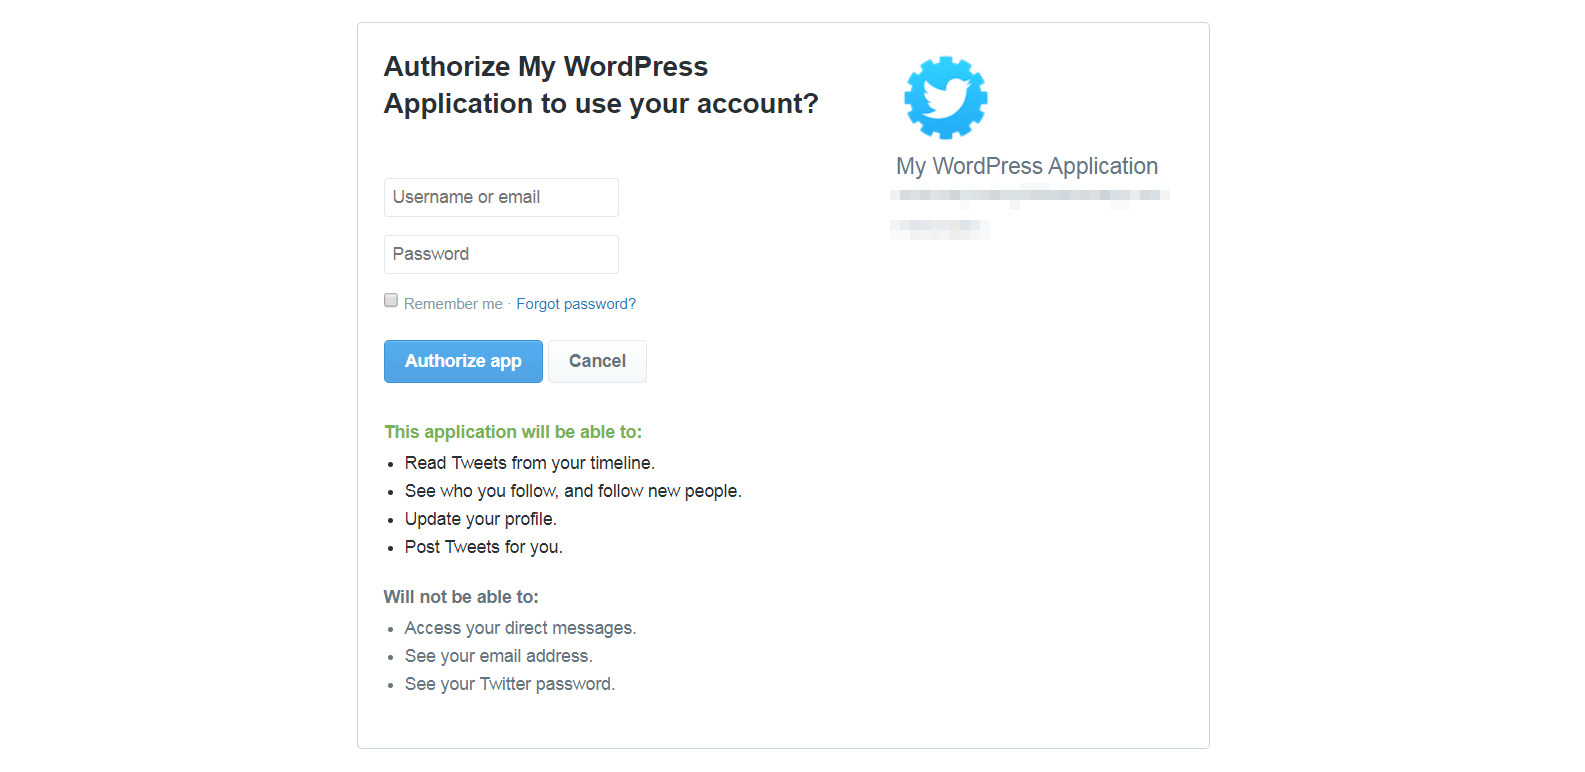 Authorizing sharing for a Twitter account.